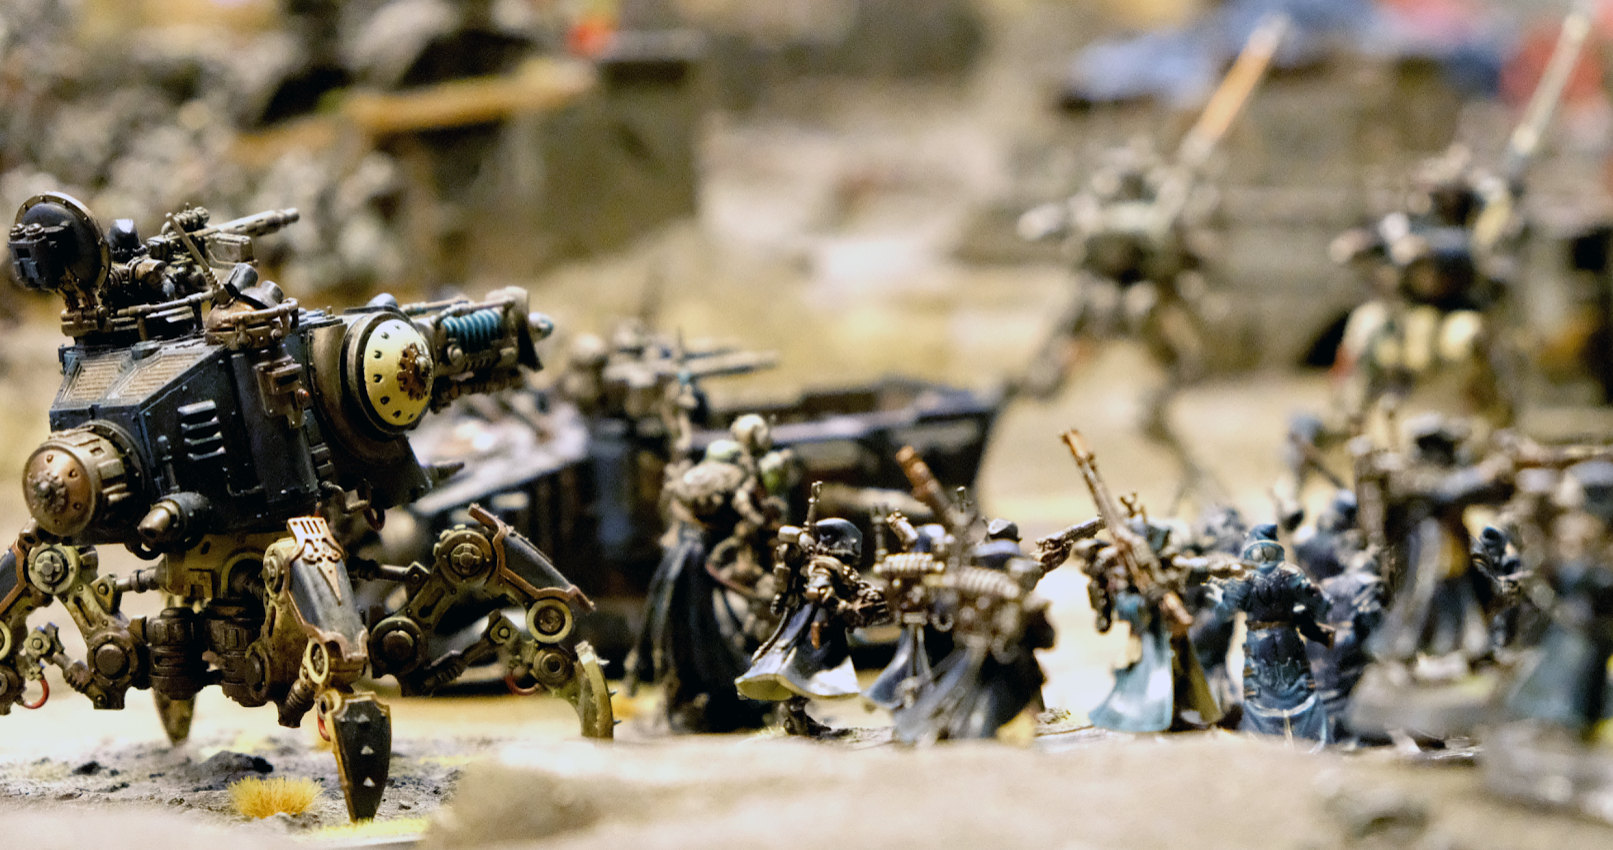 A large game of Warhammer in progress with a blue spider tank in focus at the rear of a troop charge